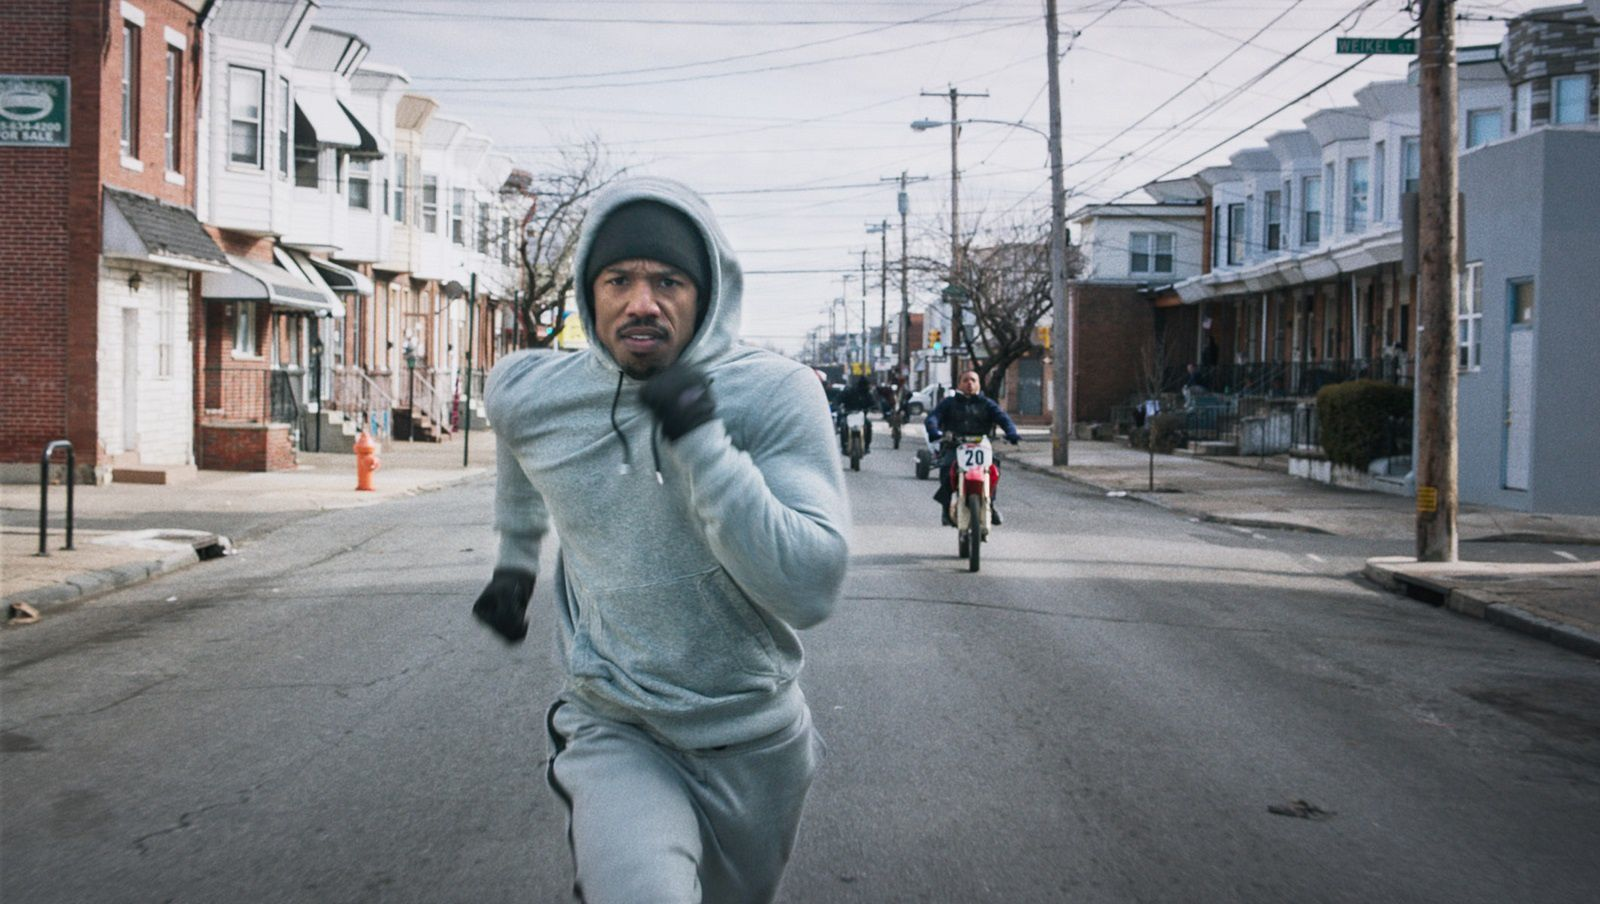 [critique] Creed : L'Héritage De Rocky Balboa